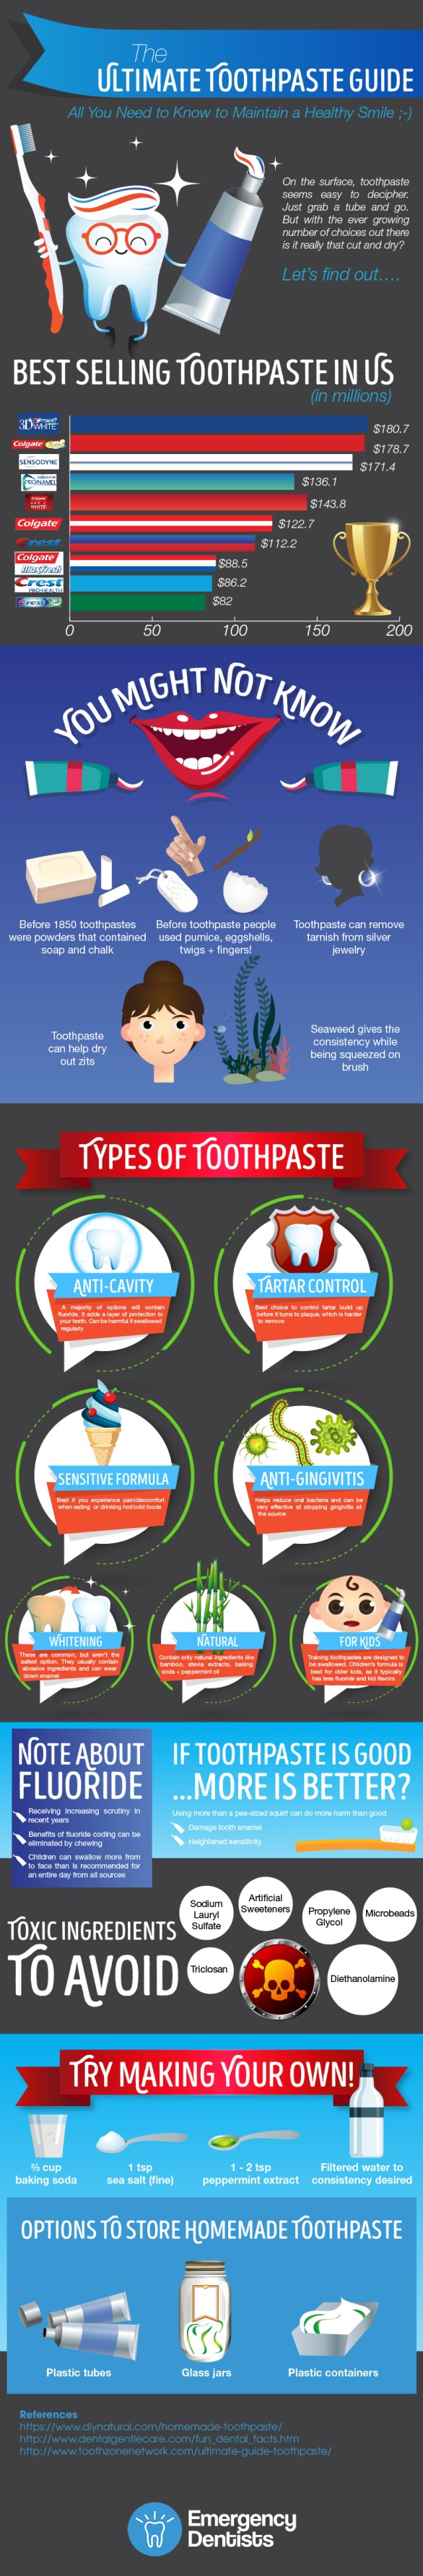 Ultimate Toothpaste Guide: All You Need to Know to Maintain a Healthy Smile